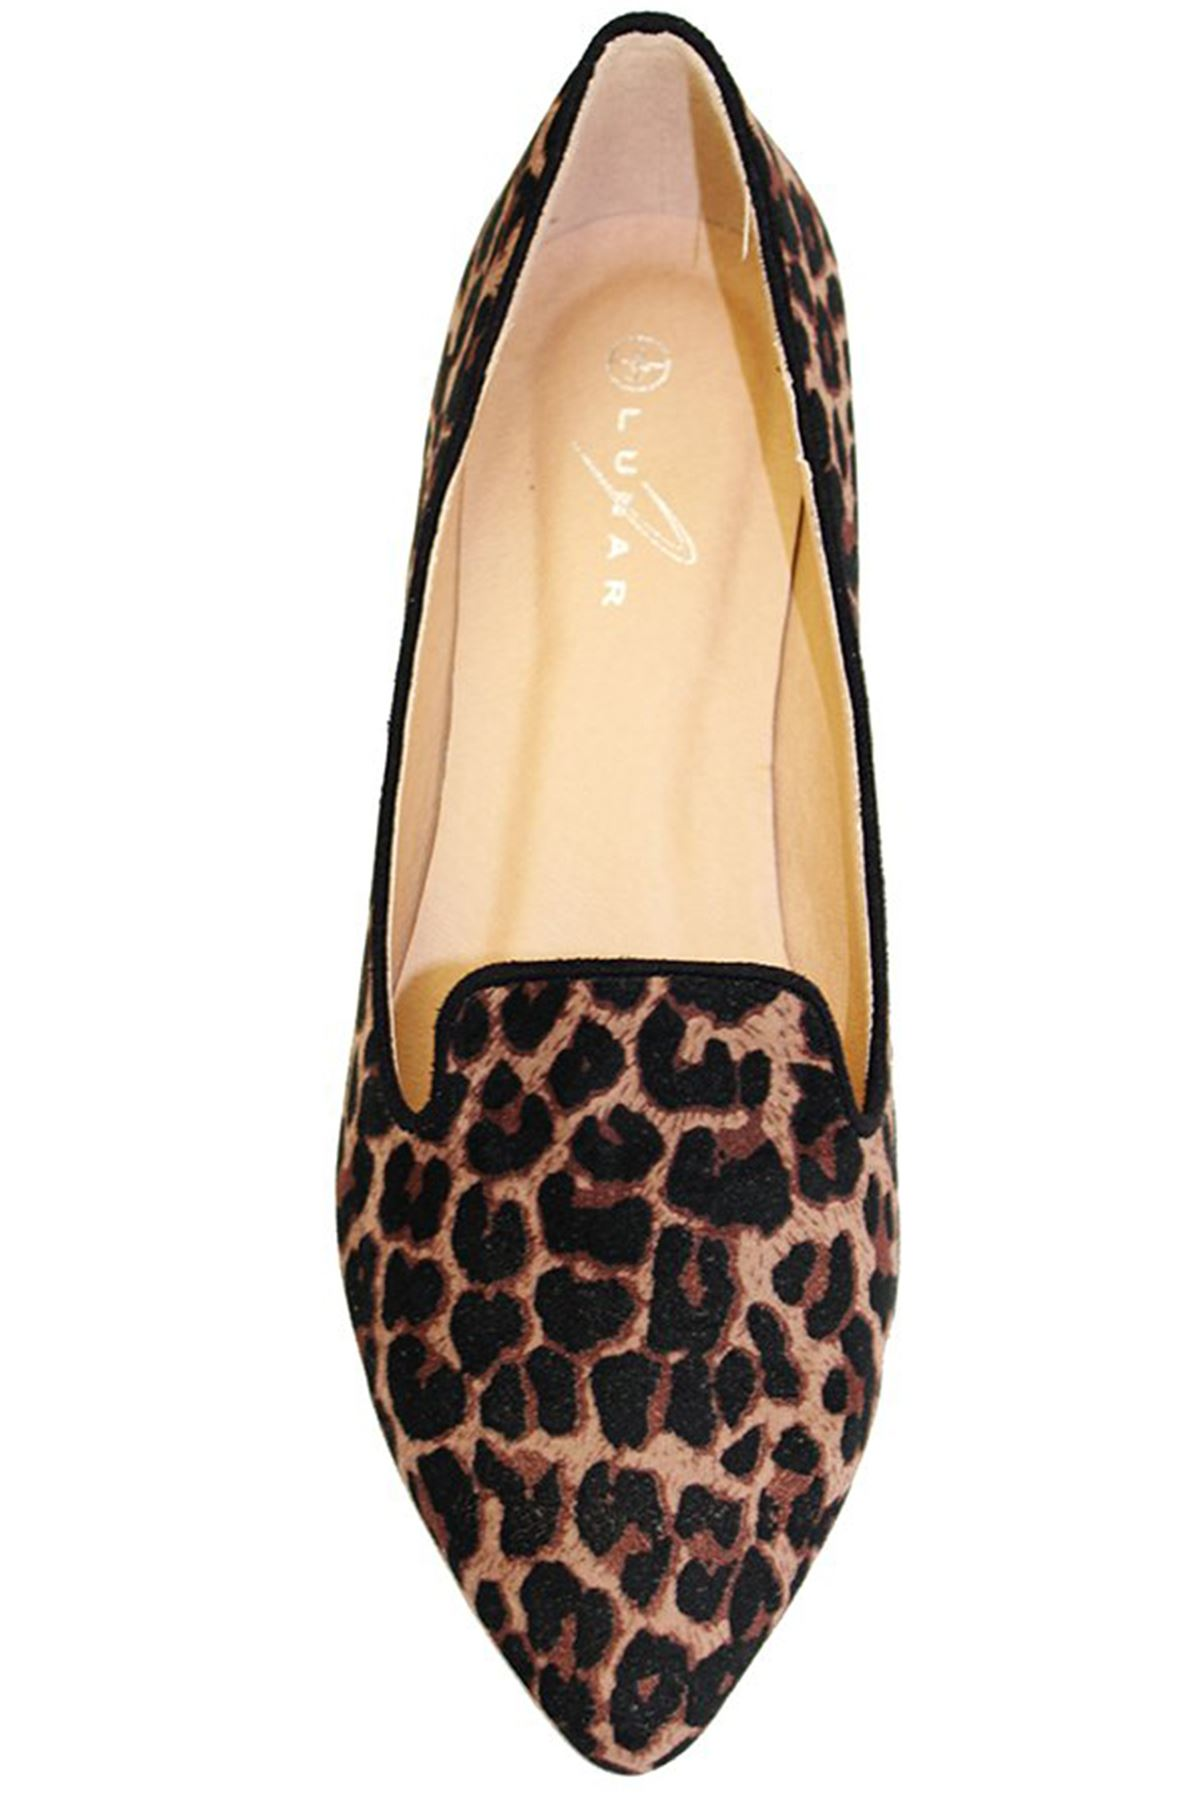 Find leopard print flats at ShopStyle. Shop the latest collection of leopard print flats from the most popular stores - all in one place.